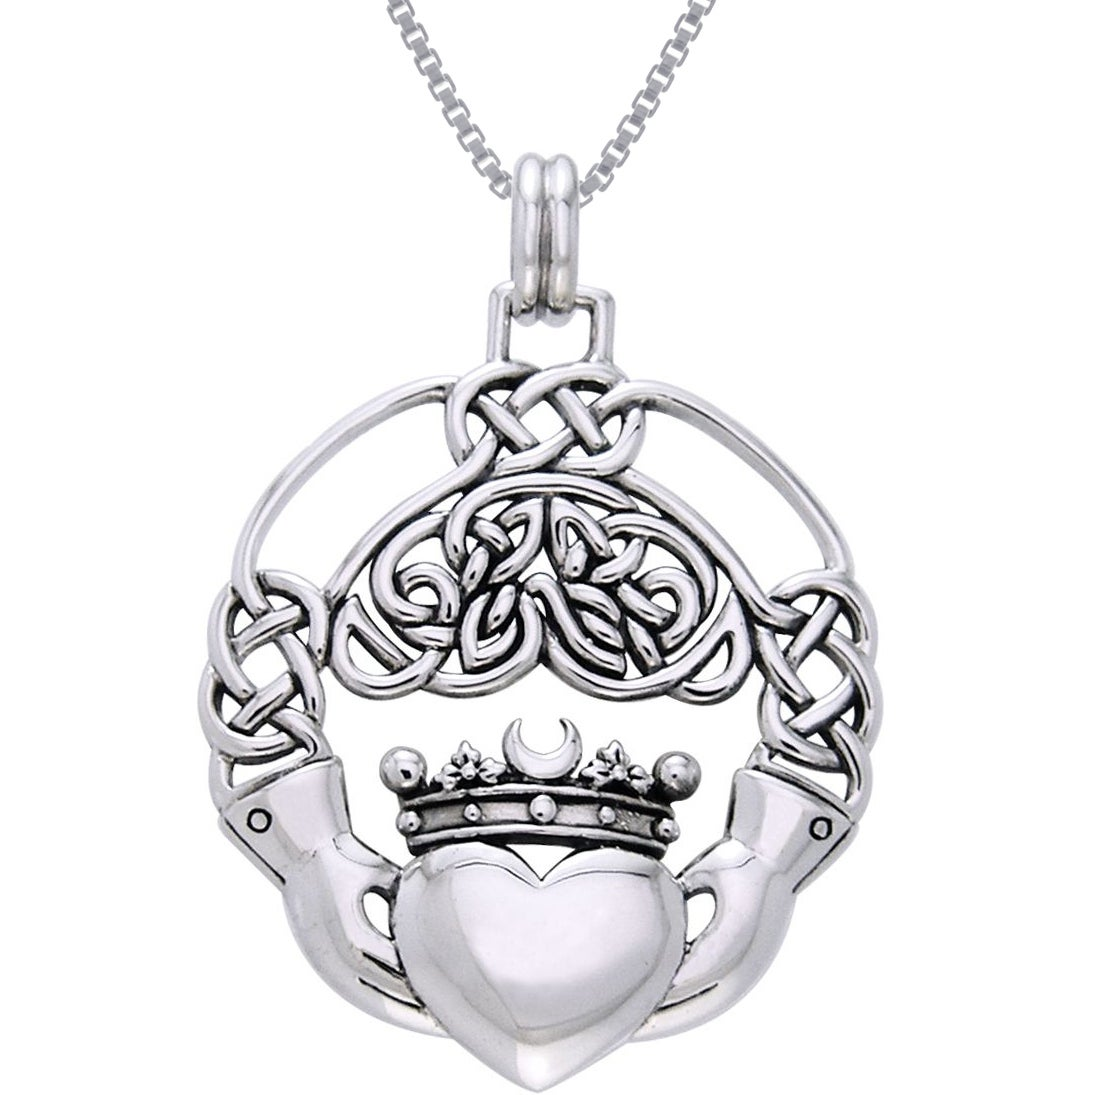 necklace htm silver claddagh ups p pendant